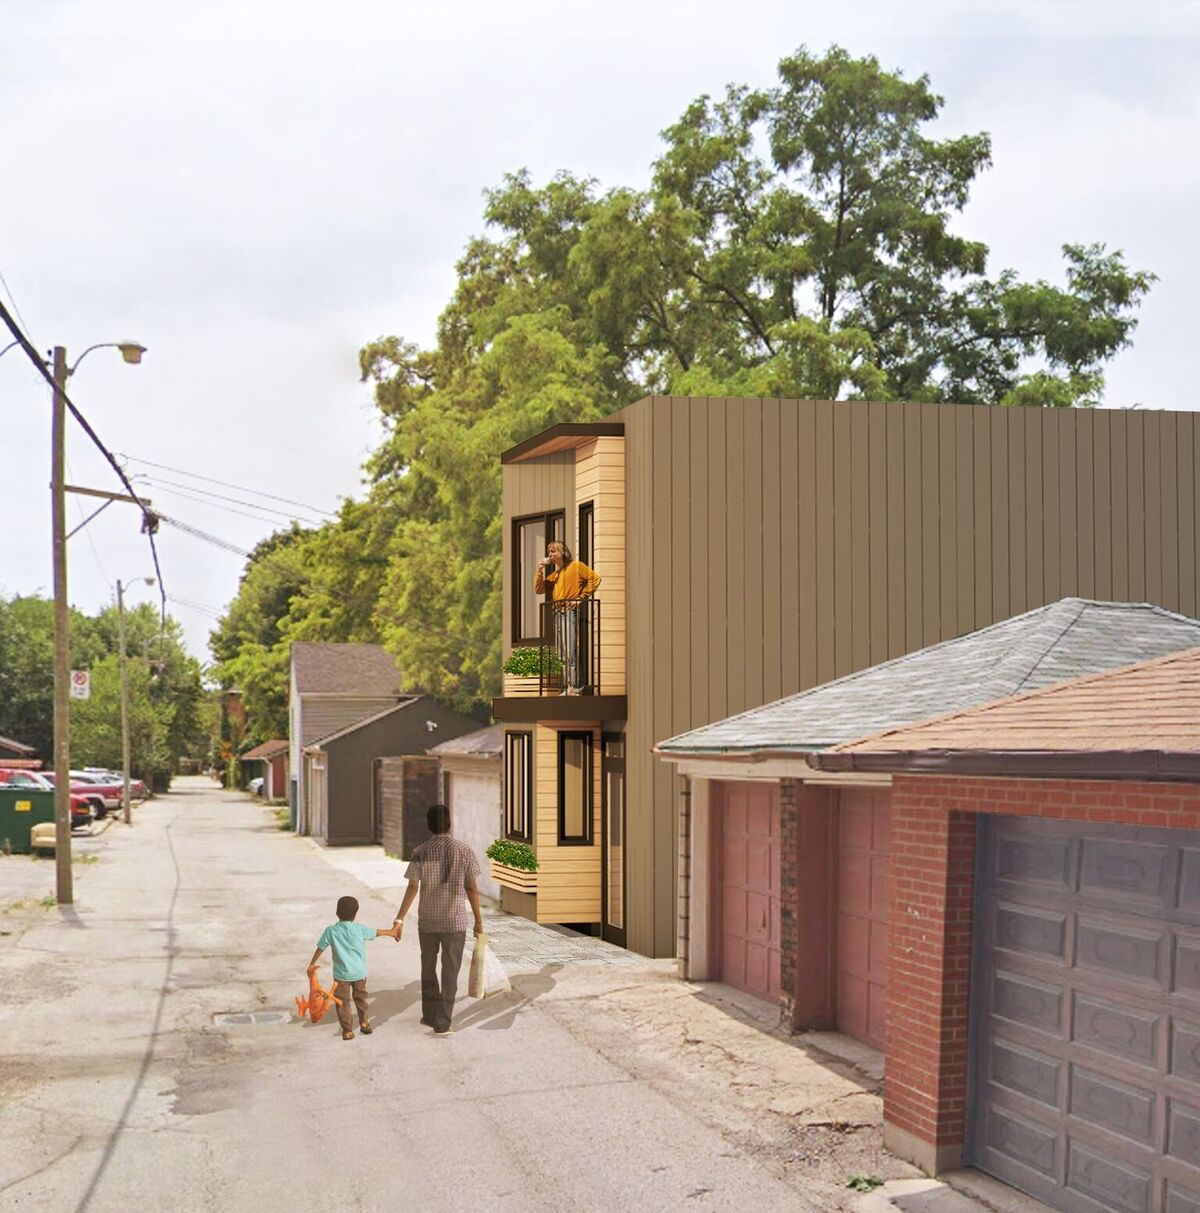 2 Bedroom, 2 Storey Laneway House Design by The Architect Builders Collaborative Inc. in Toronto